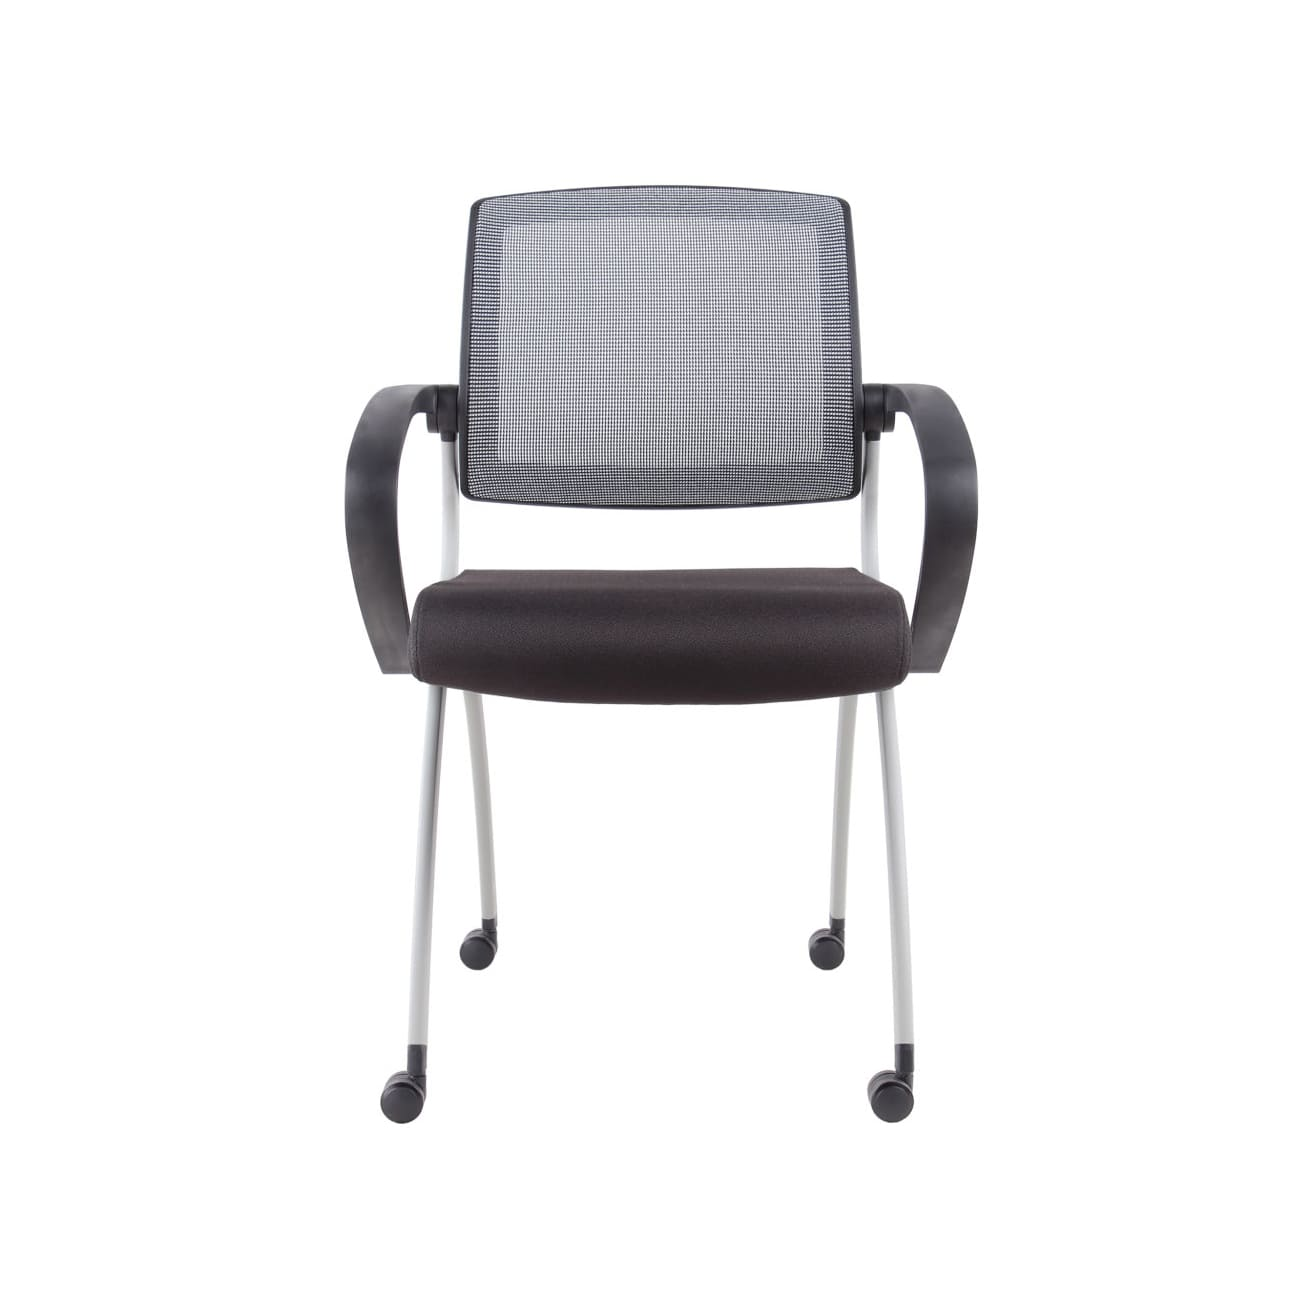 Office Furniture Australia Buy A Zoom Mesh Chair Office Chairs Delivery Direct